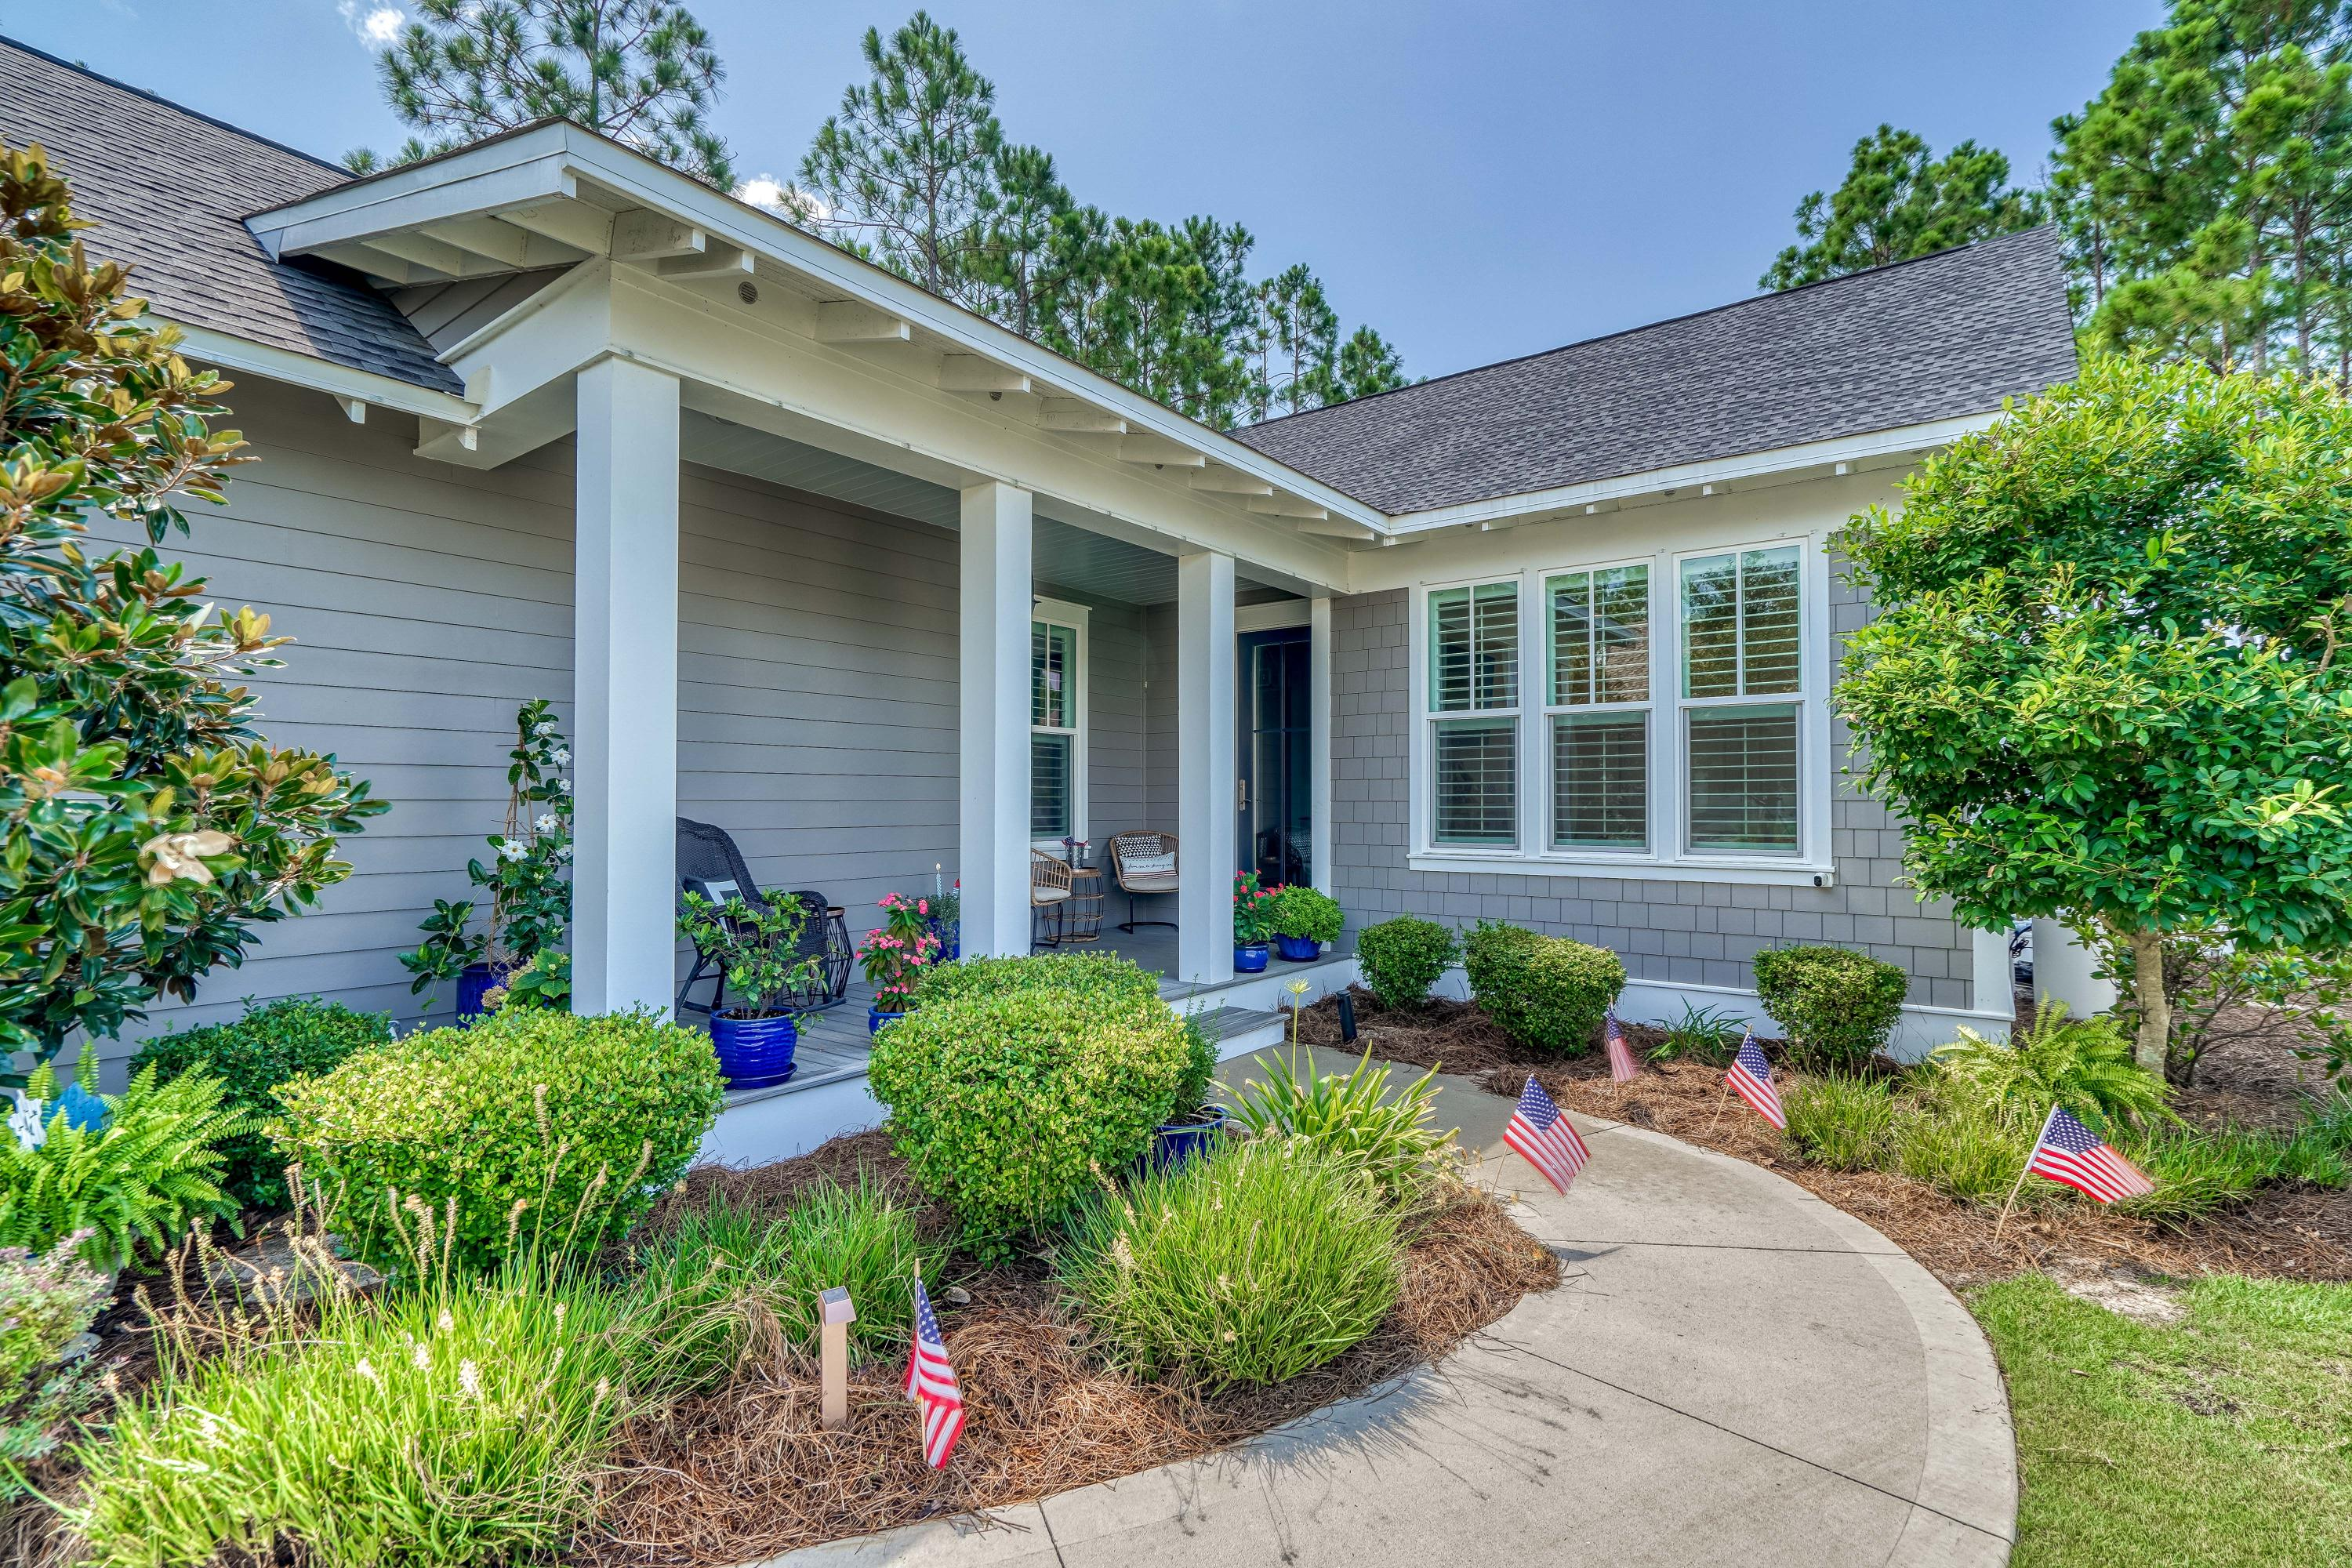 Immaculate home in WaterSound Origins. Located on a premium corner lot with a picturesque gas lanter